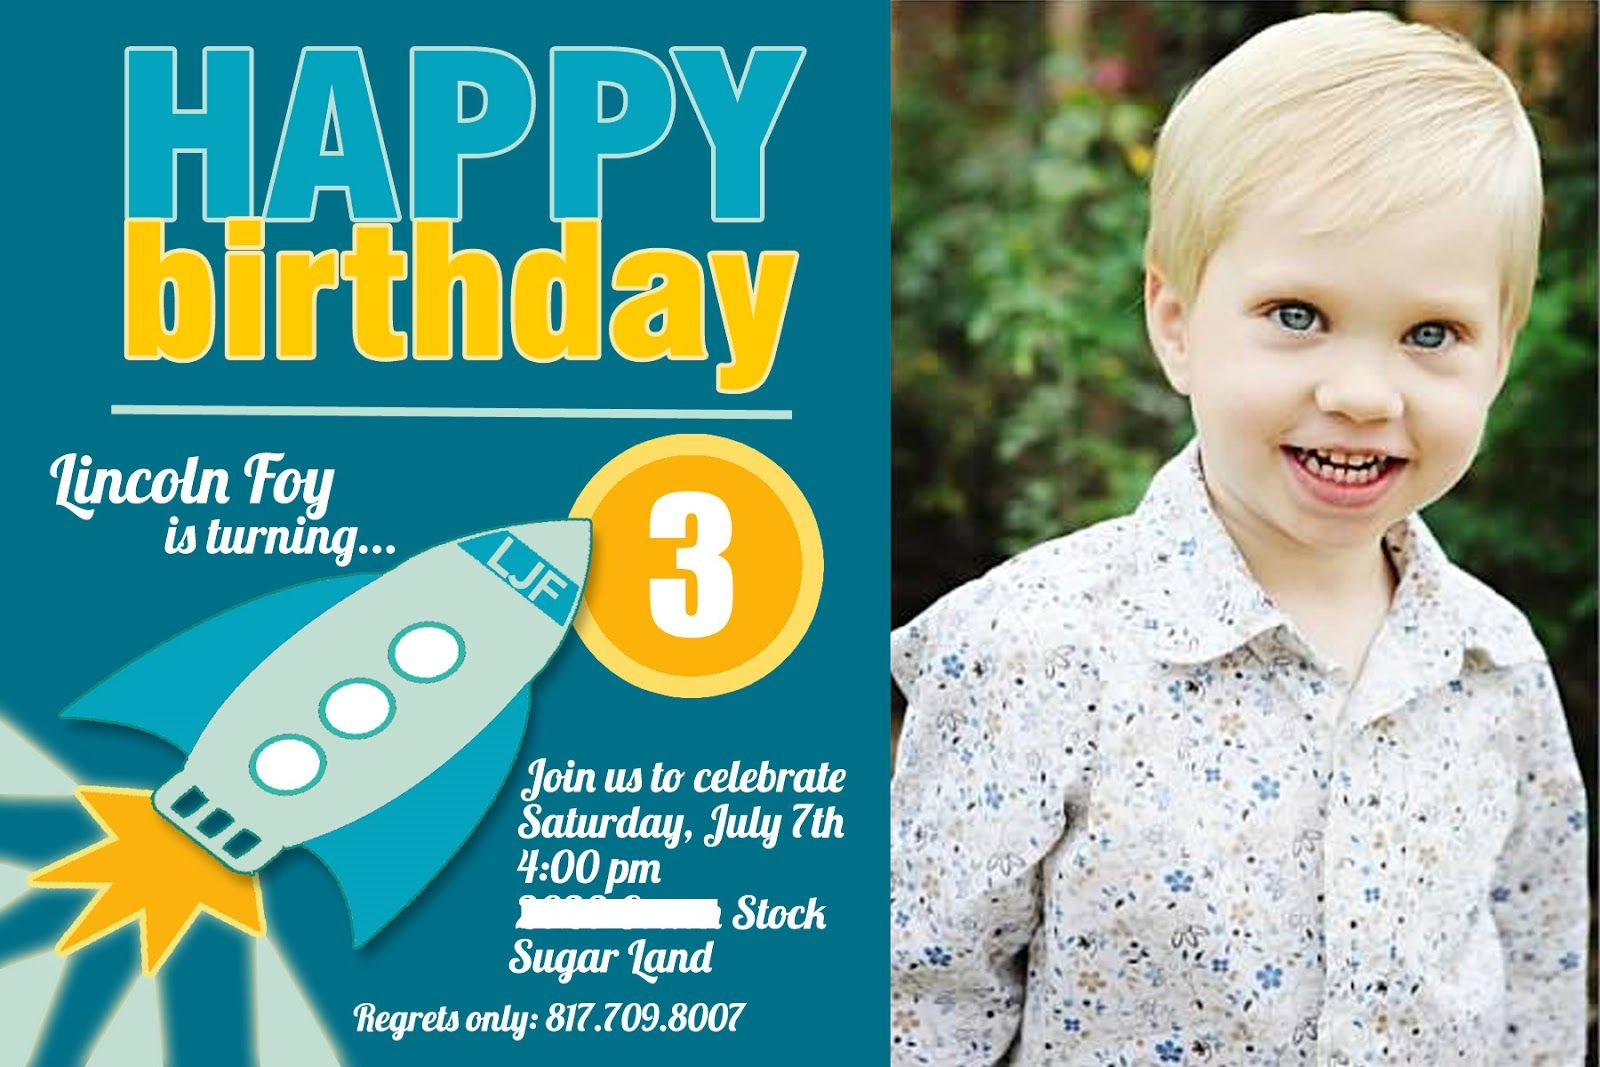 what can i do for a 3 year old birthday party